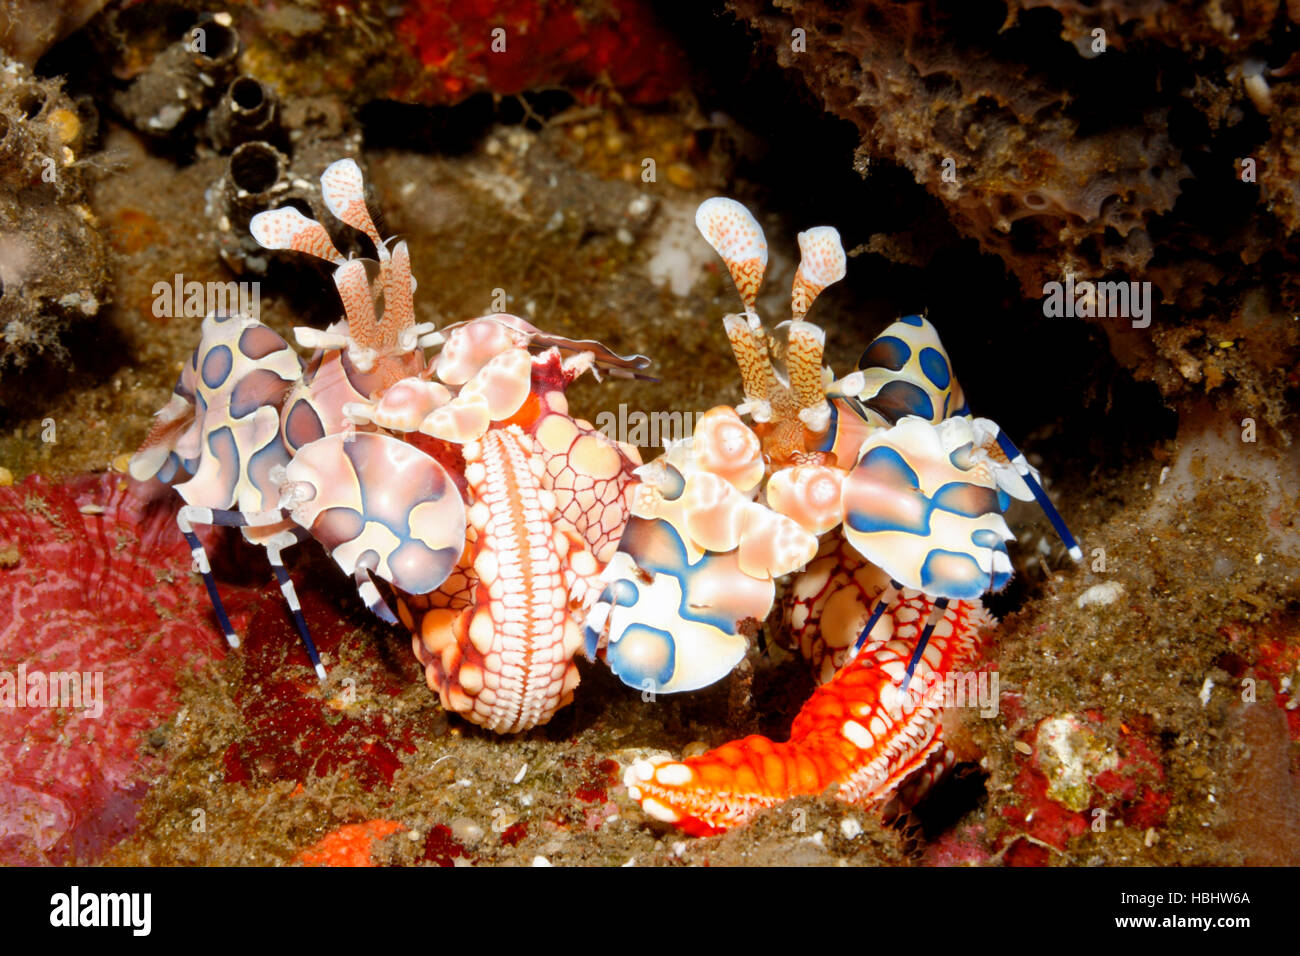 harlequin-shrimps-hymenocera-picta-male-and-female-with-their-sea-HBHW6A.jpg